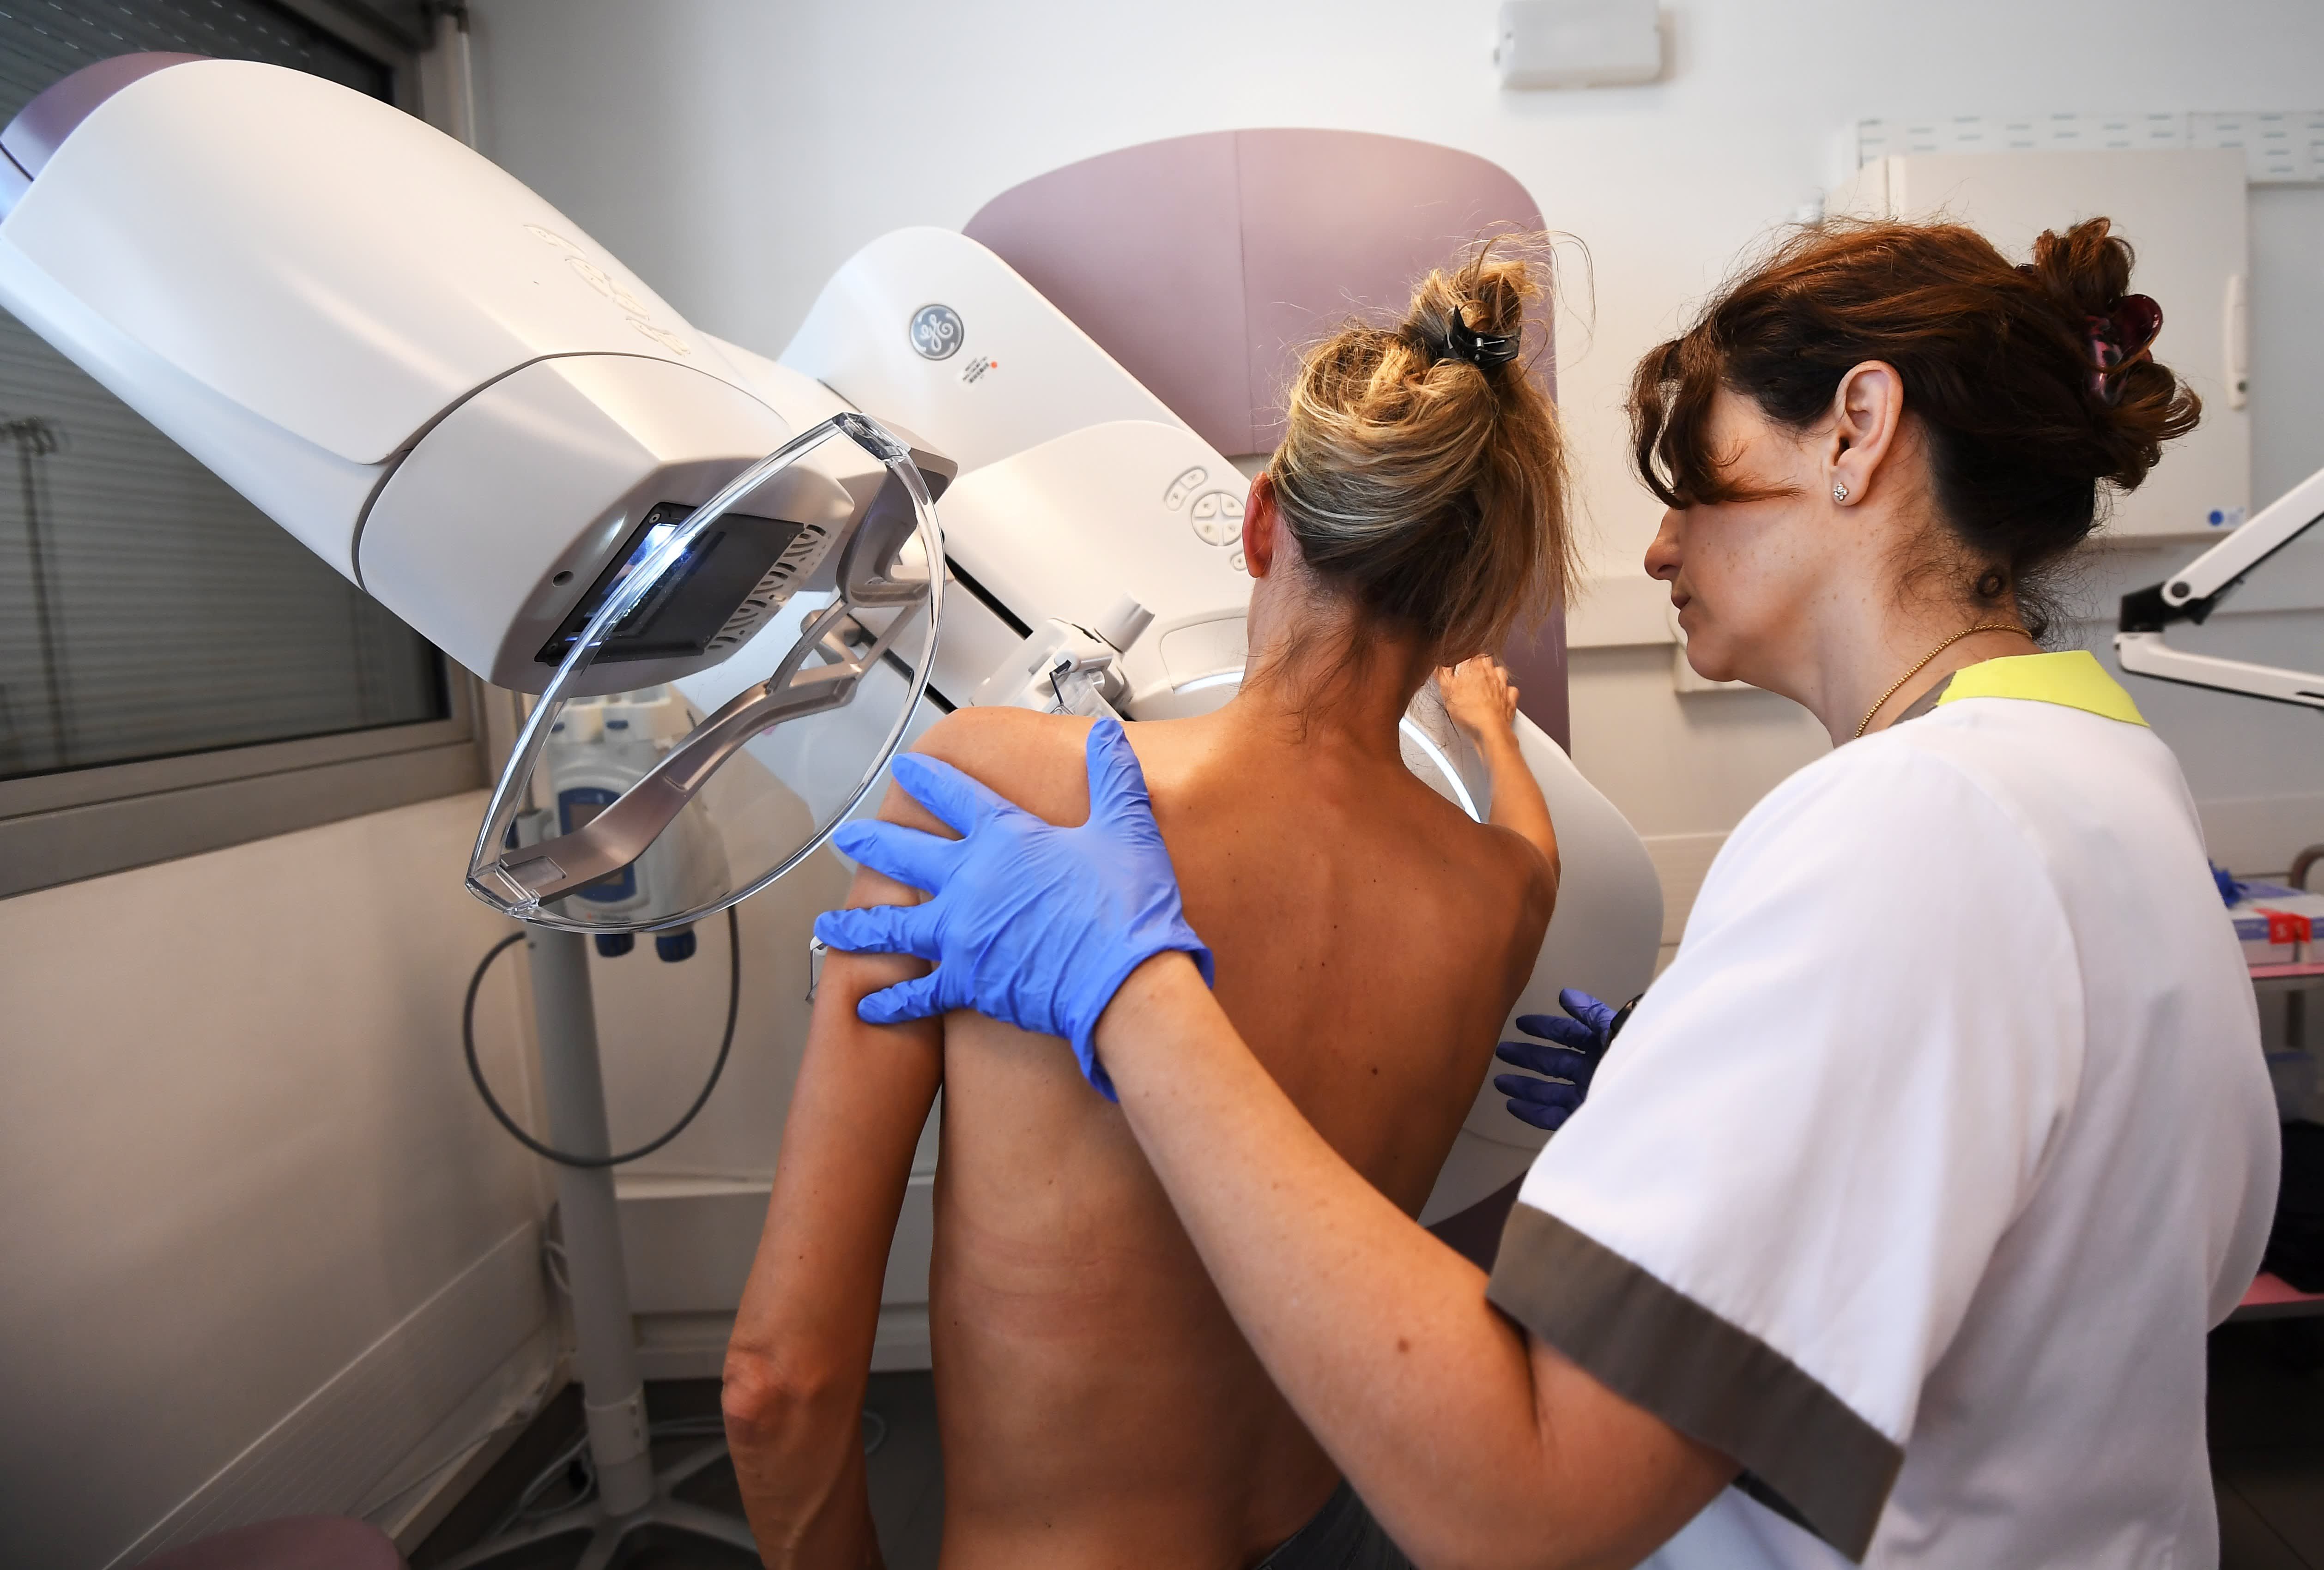 FDA proposes rule to notify women with dense breasts about increased cancer risk and imprecise mammograms